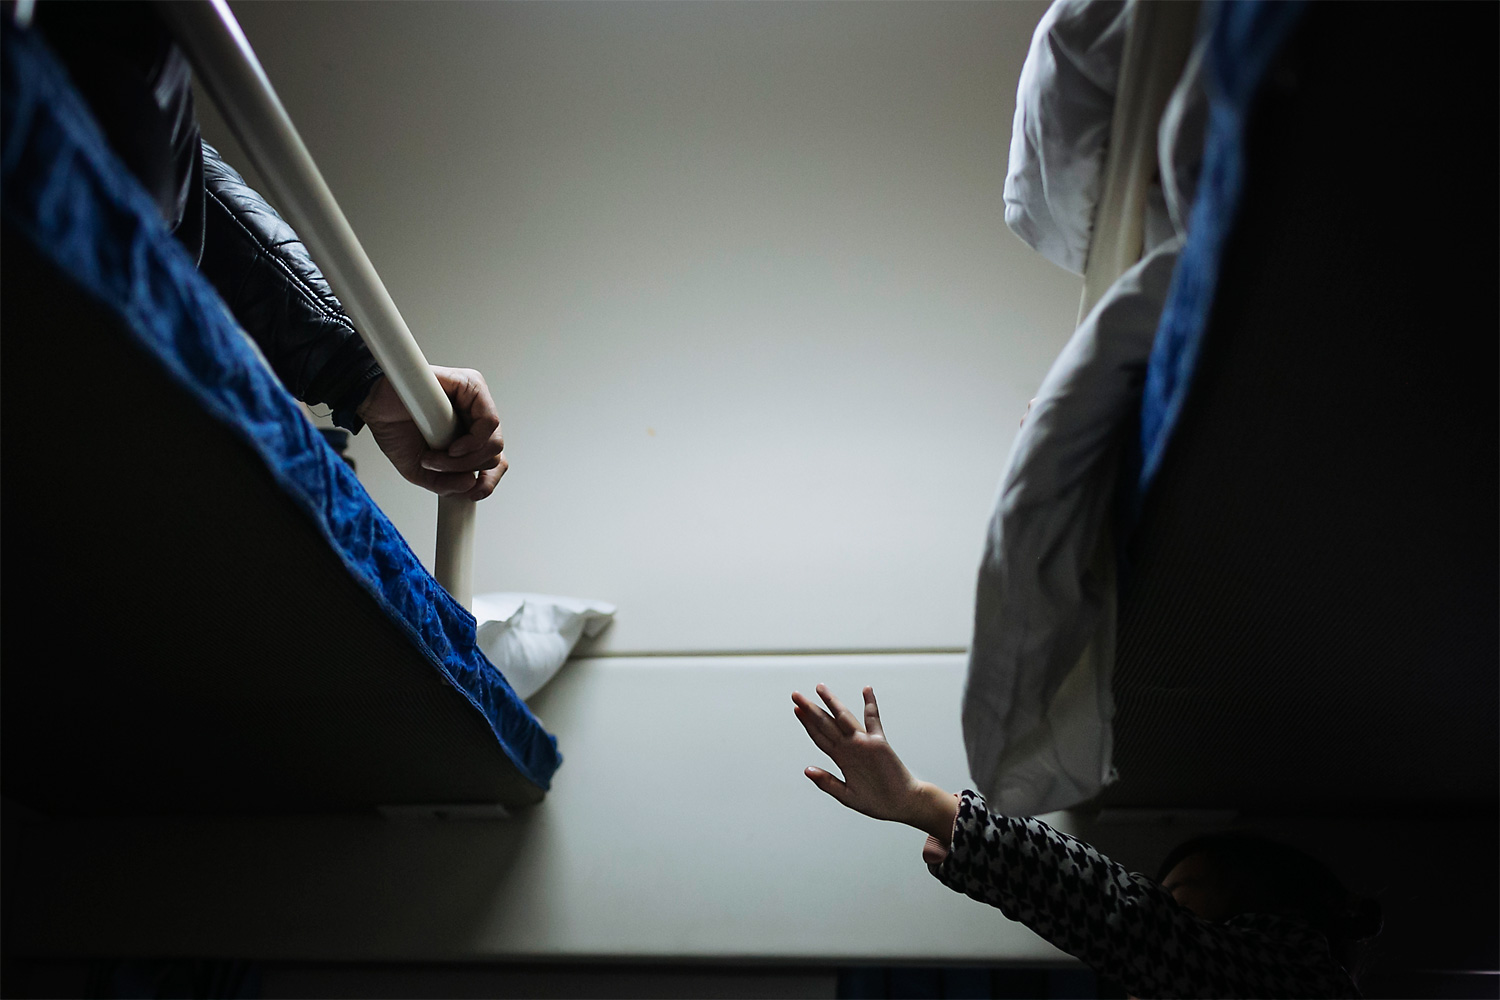 On a return train bound for Chengdu, Sichuan province, Siyao reaches out to her father to touch his hand as Li Mingjin lies on the bed gripping the edge tightly because of pain.